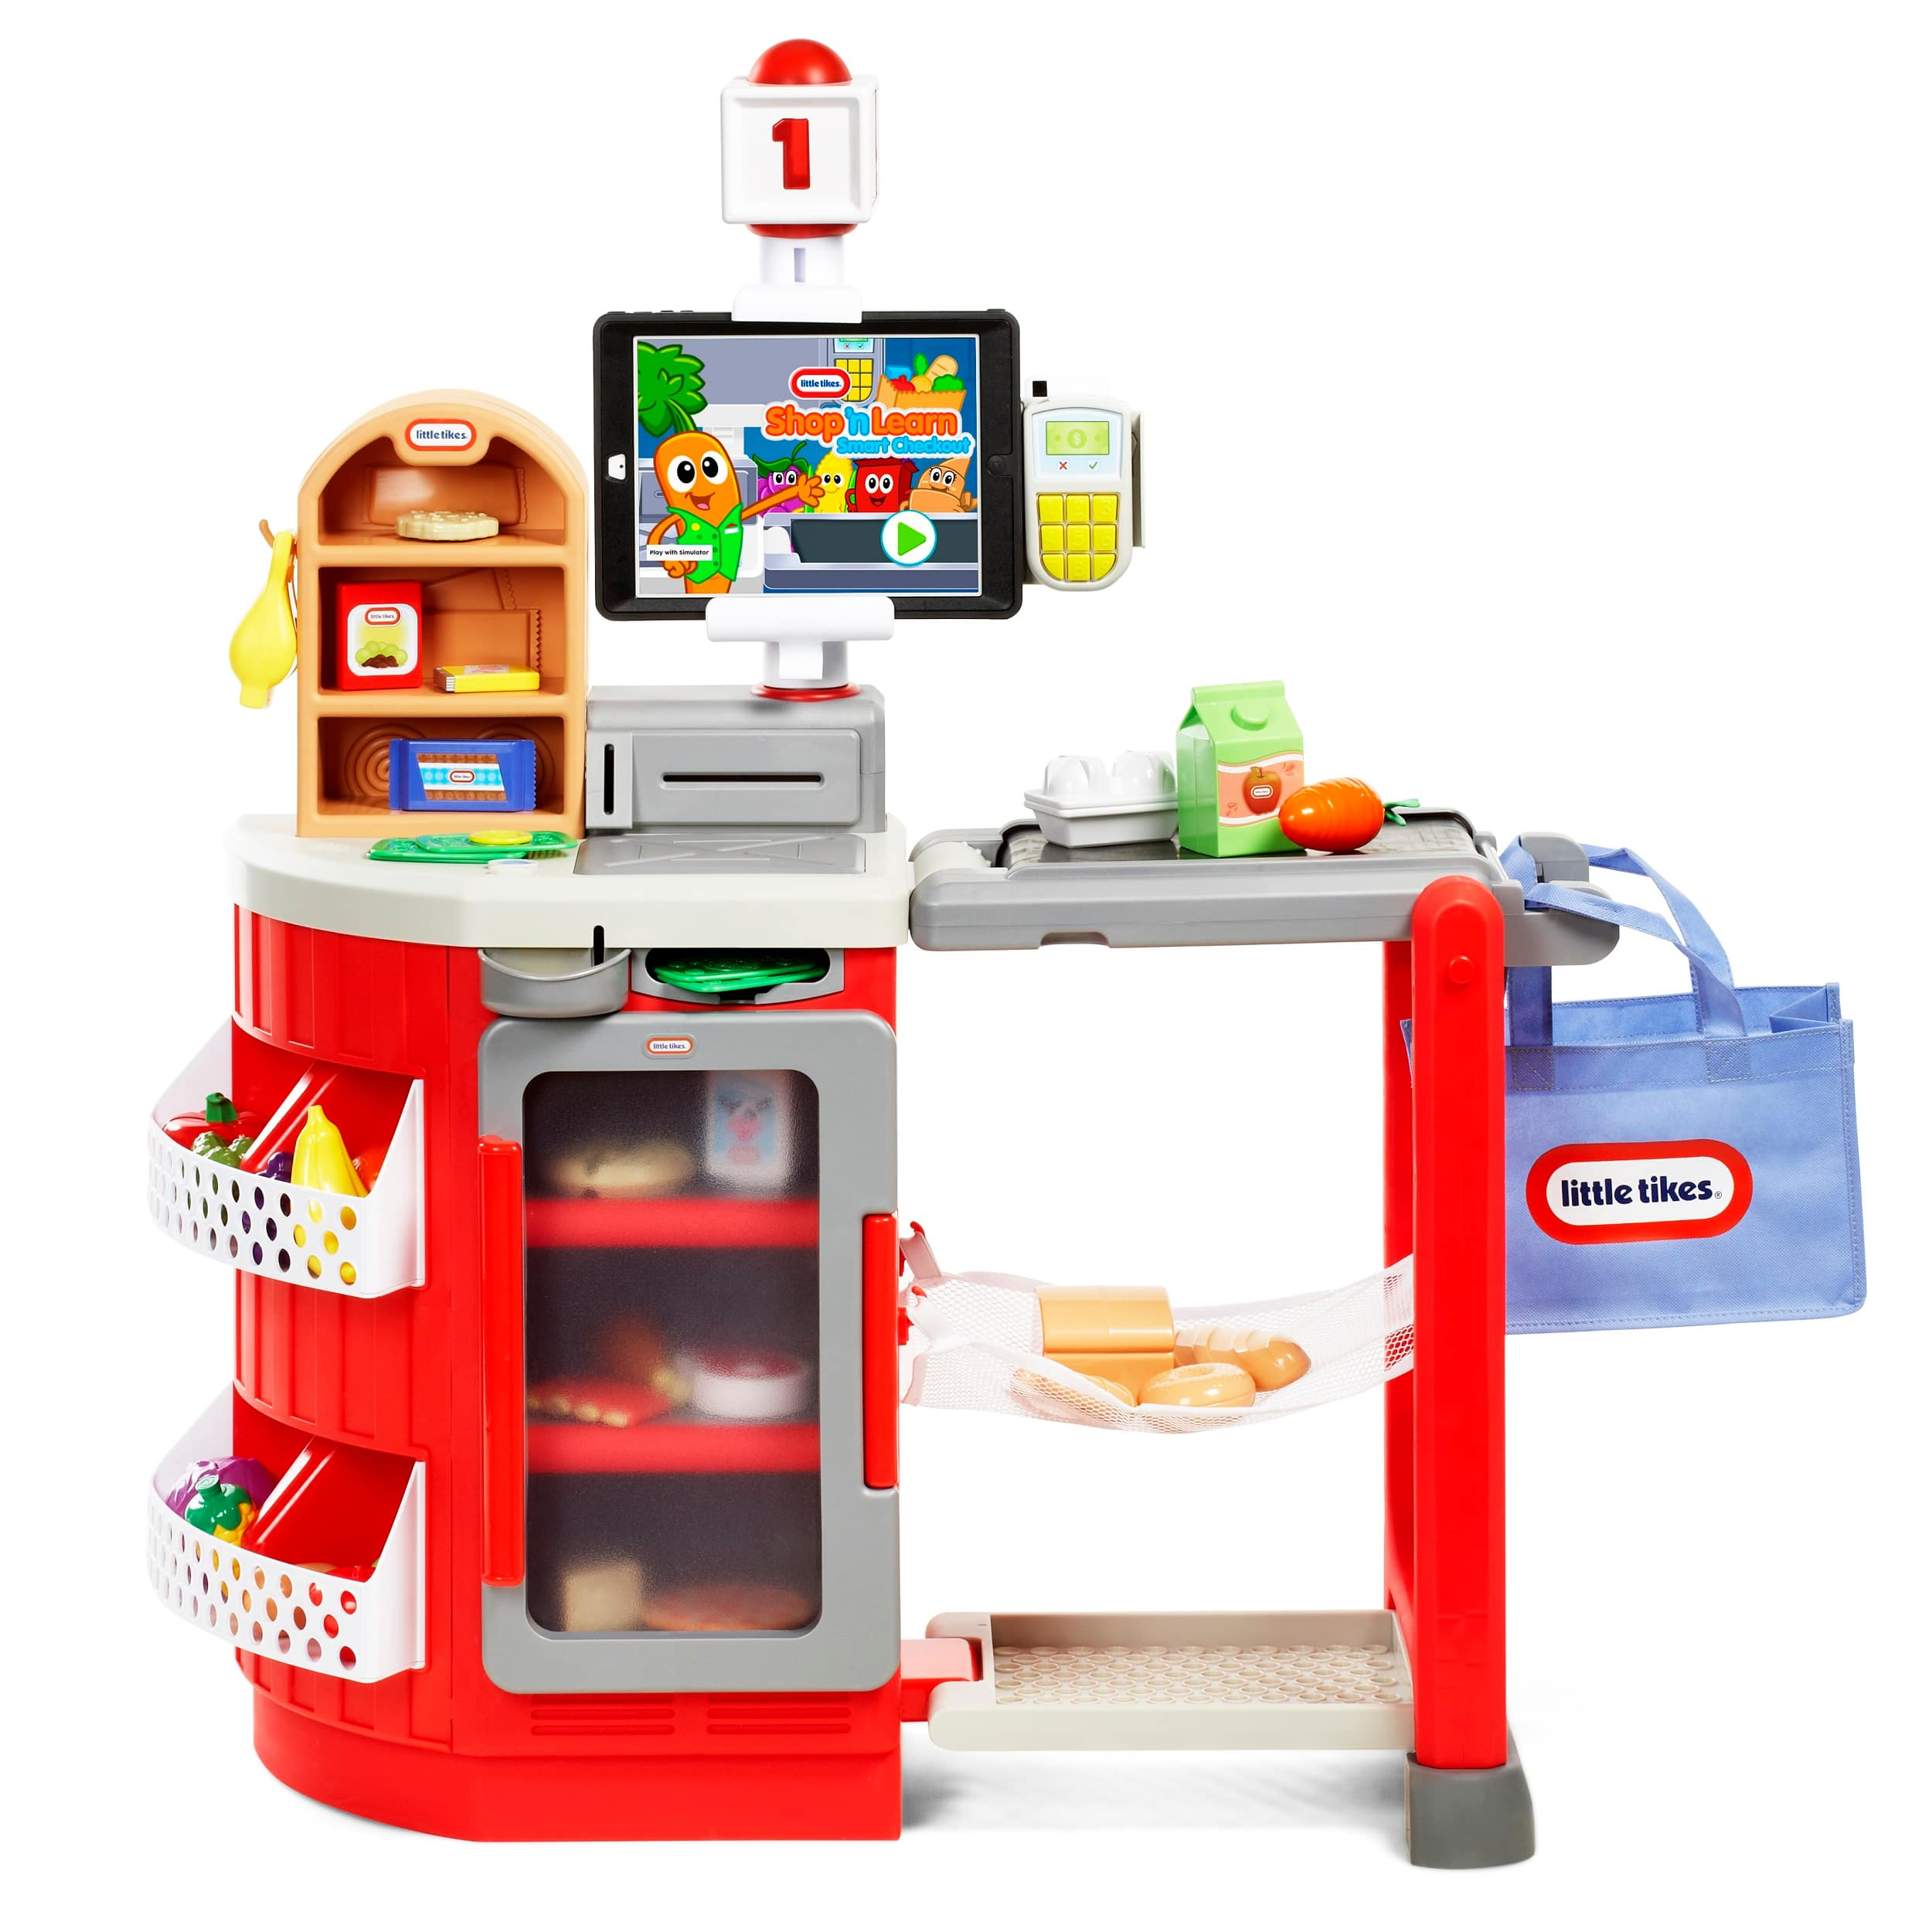 Little Tikes Shop 'n Learn Smart Checkout $85 + Free Shipping